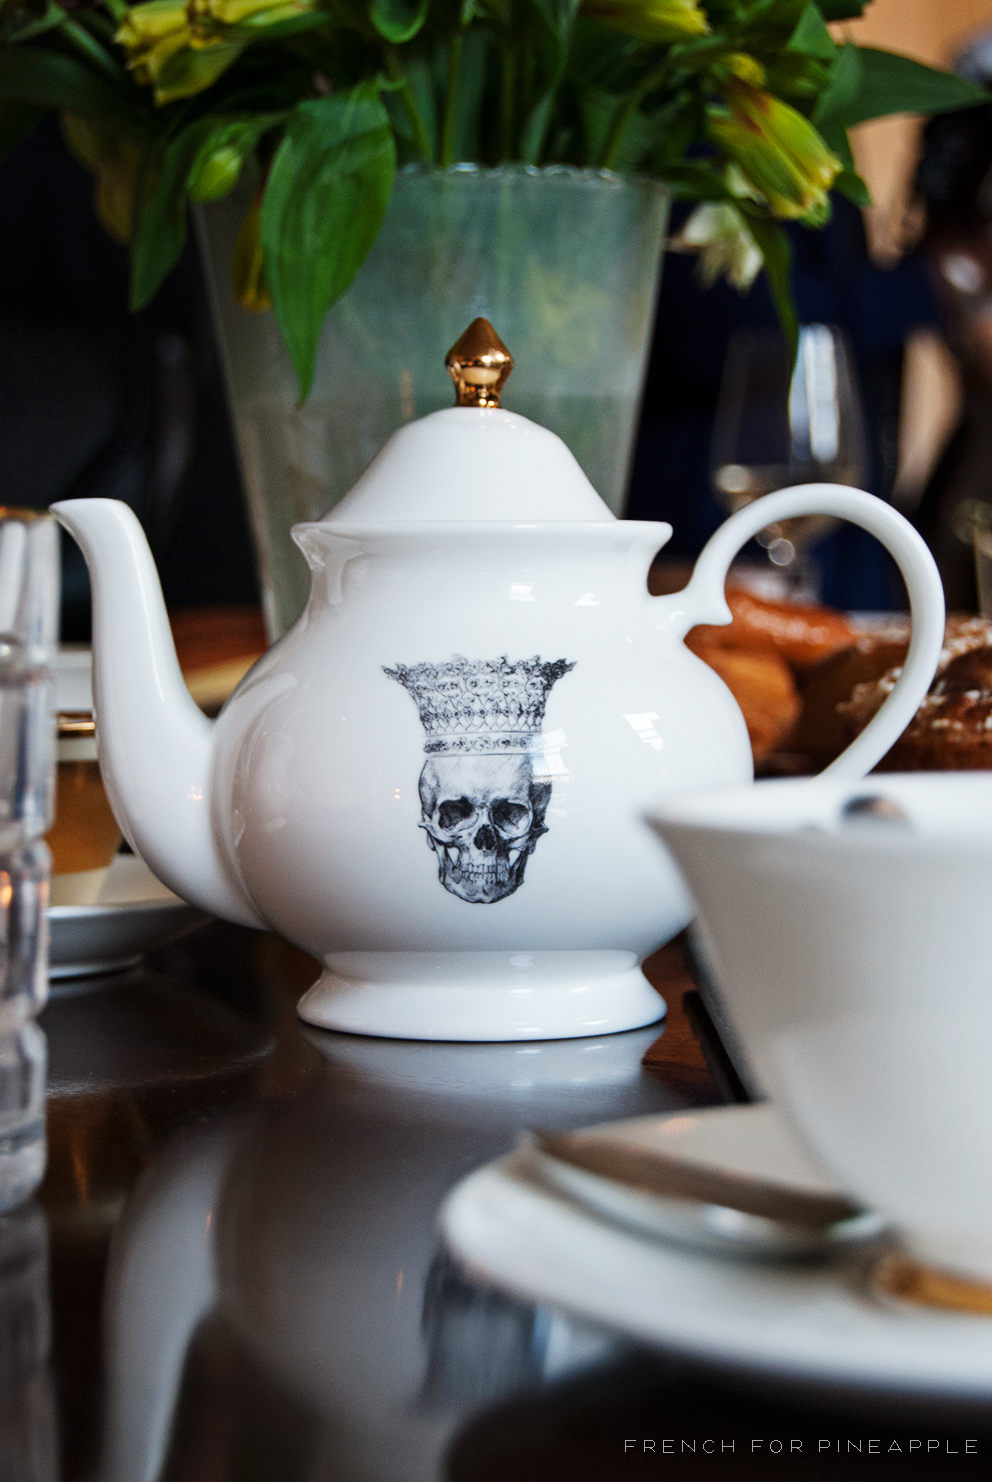 Skull With Crown Mini Teapot - French For Pineapple Blog